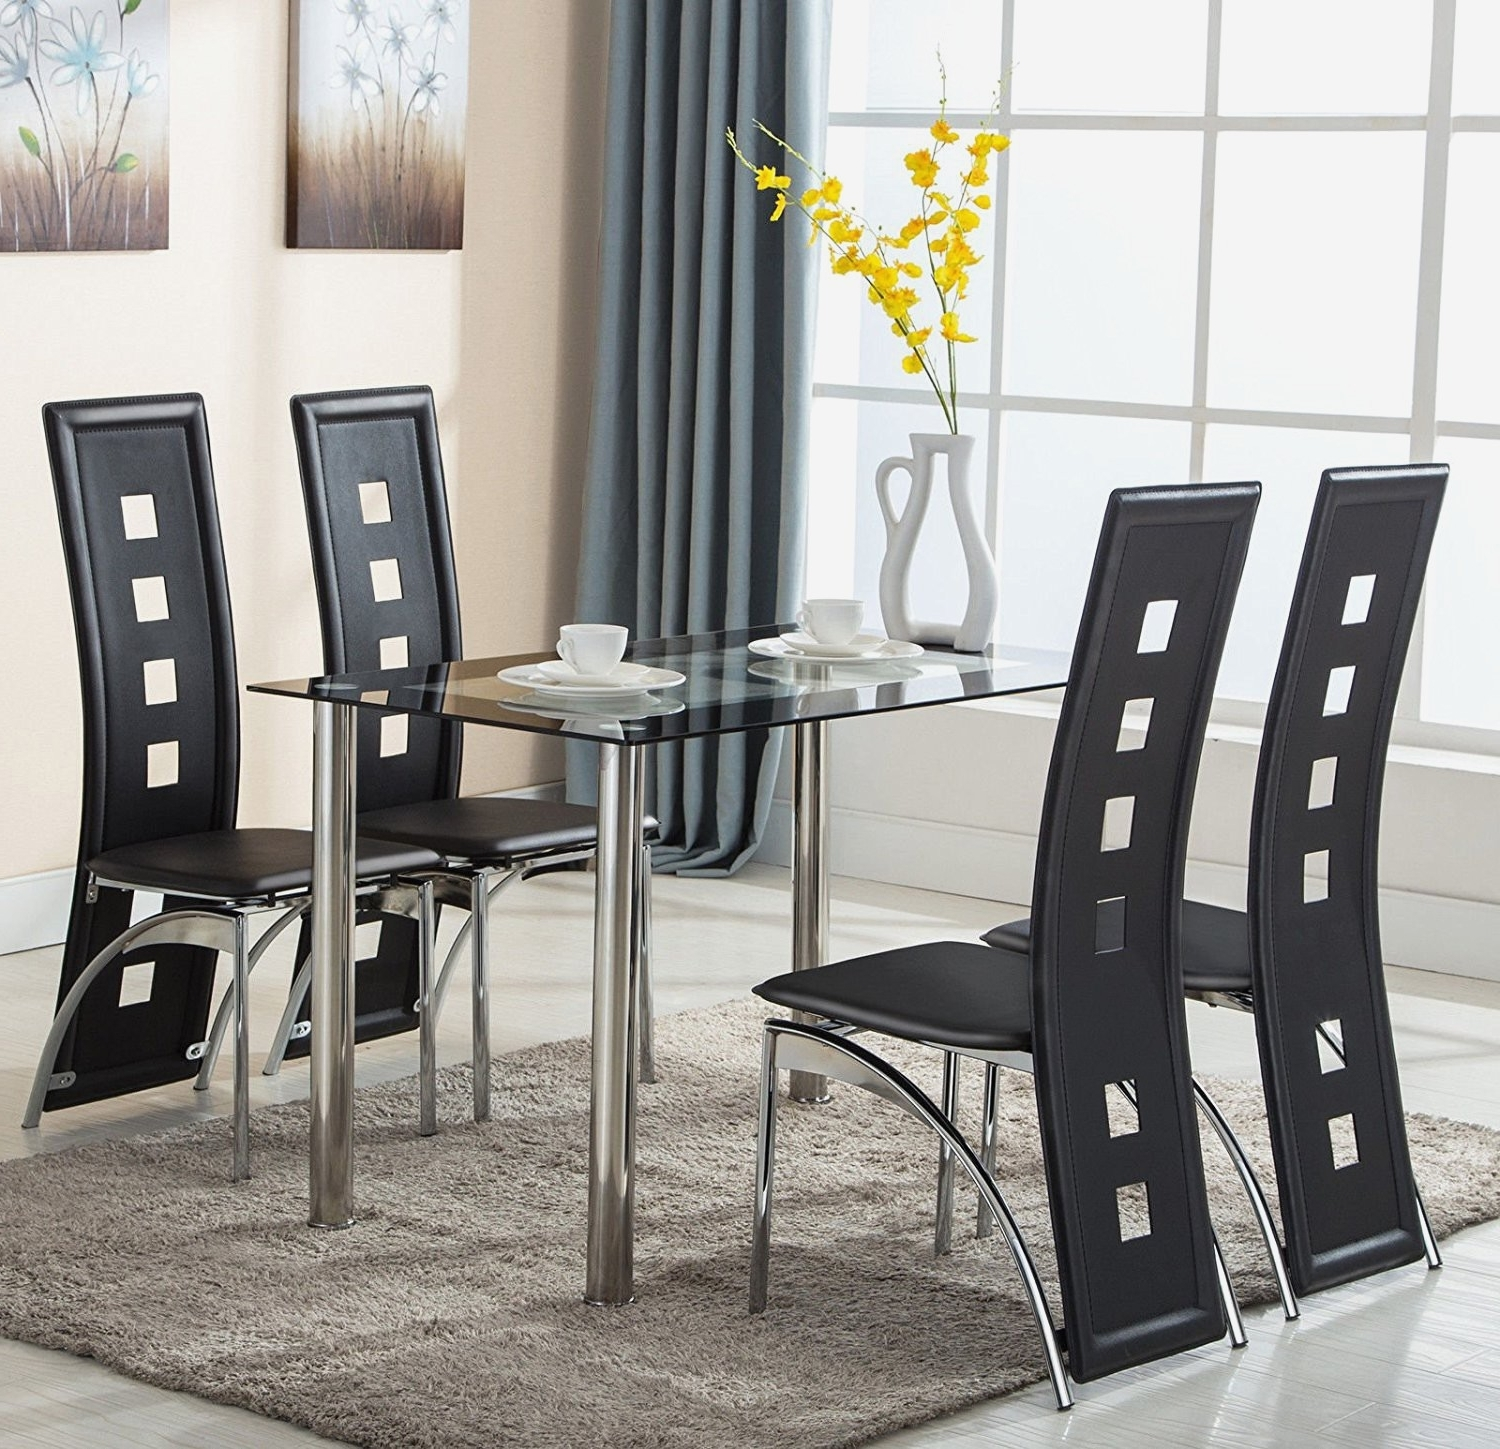 Widely Used Ebay Dining Suites Regarding Dining Room Suites Ebay – Www (View 4 of 25)